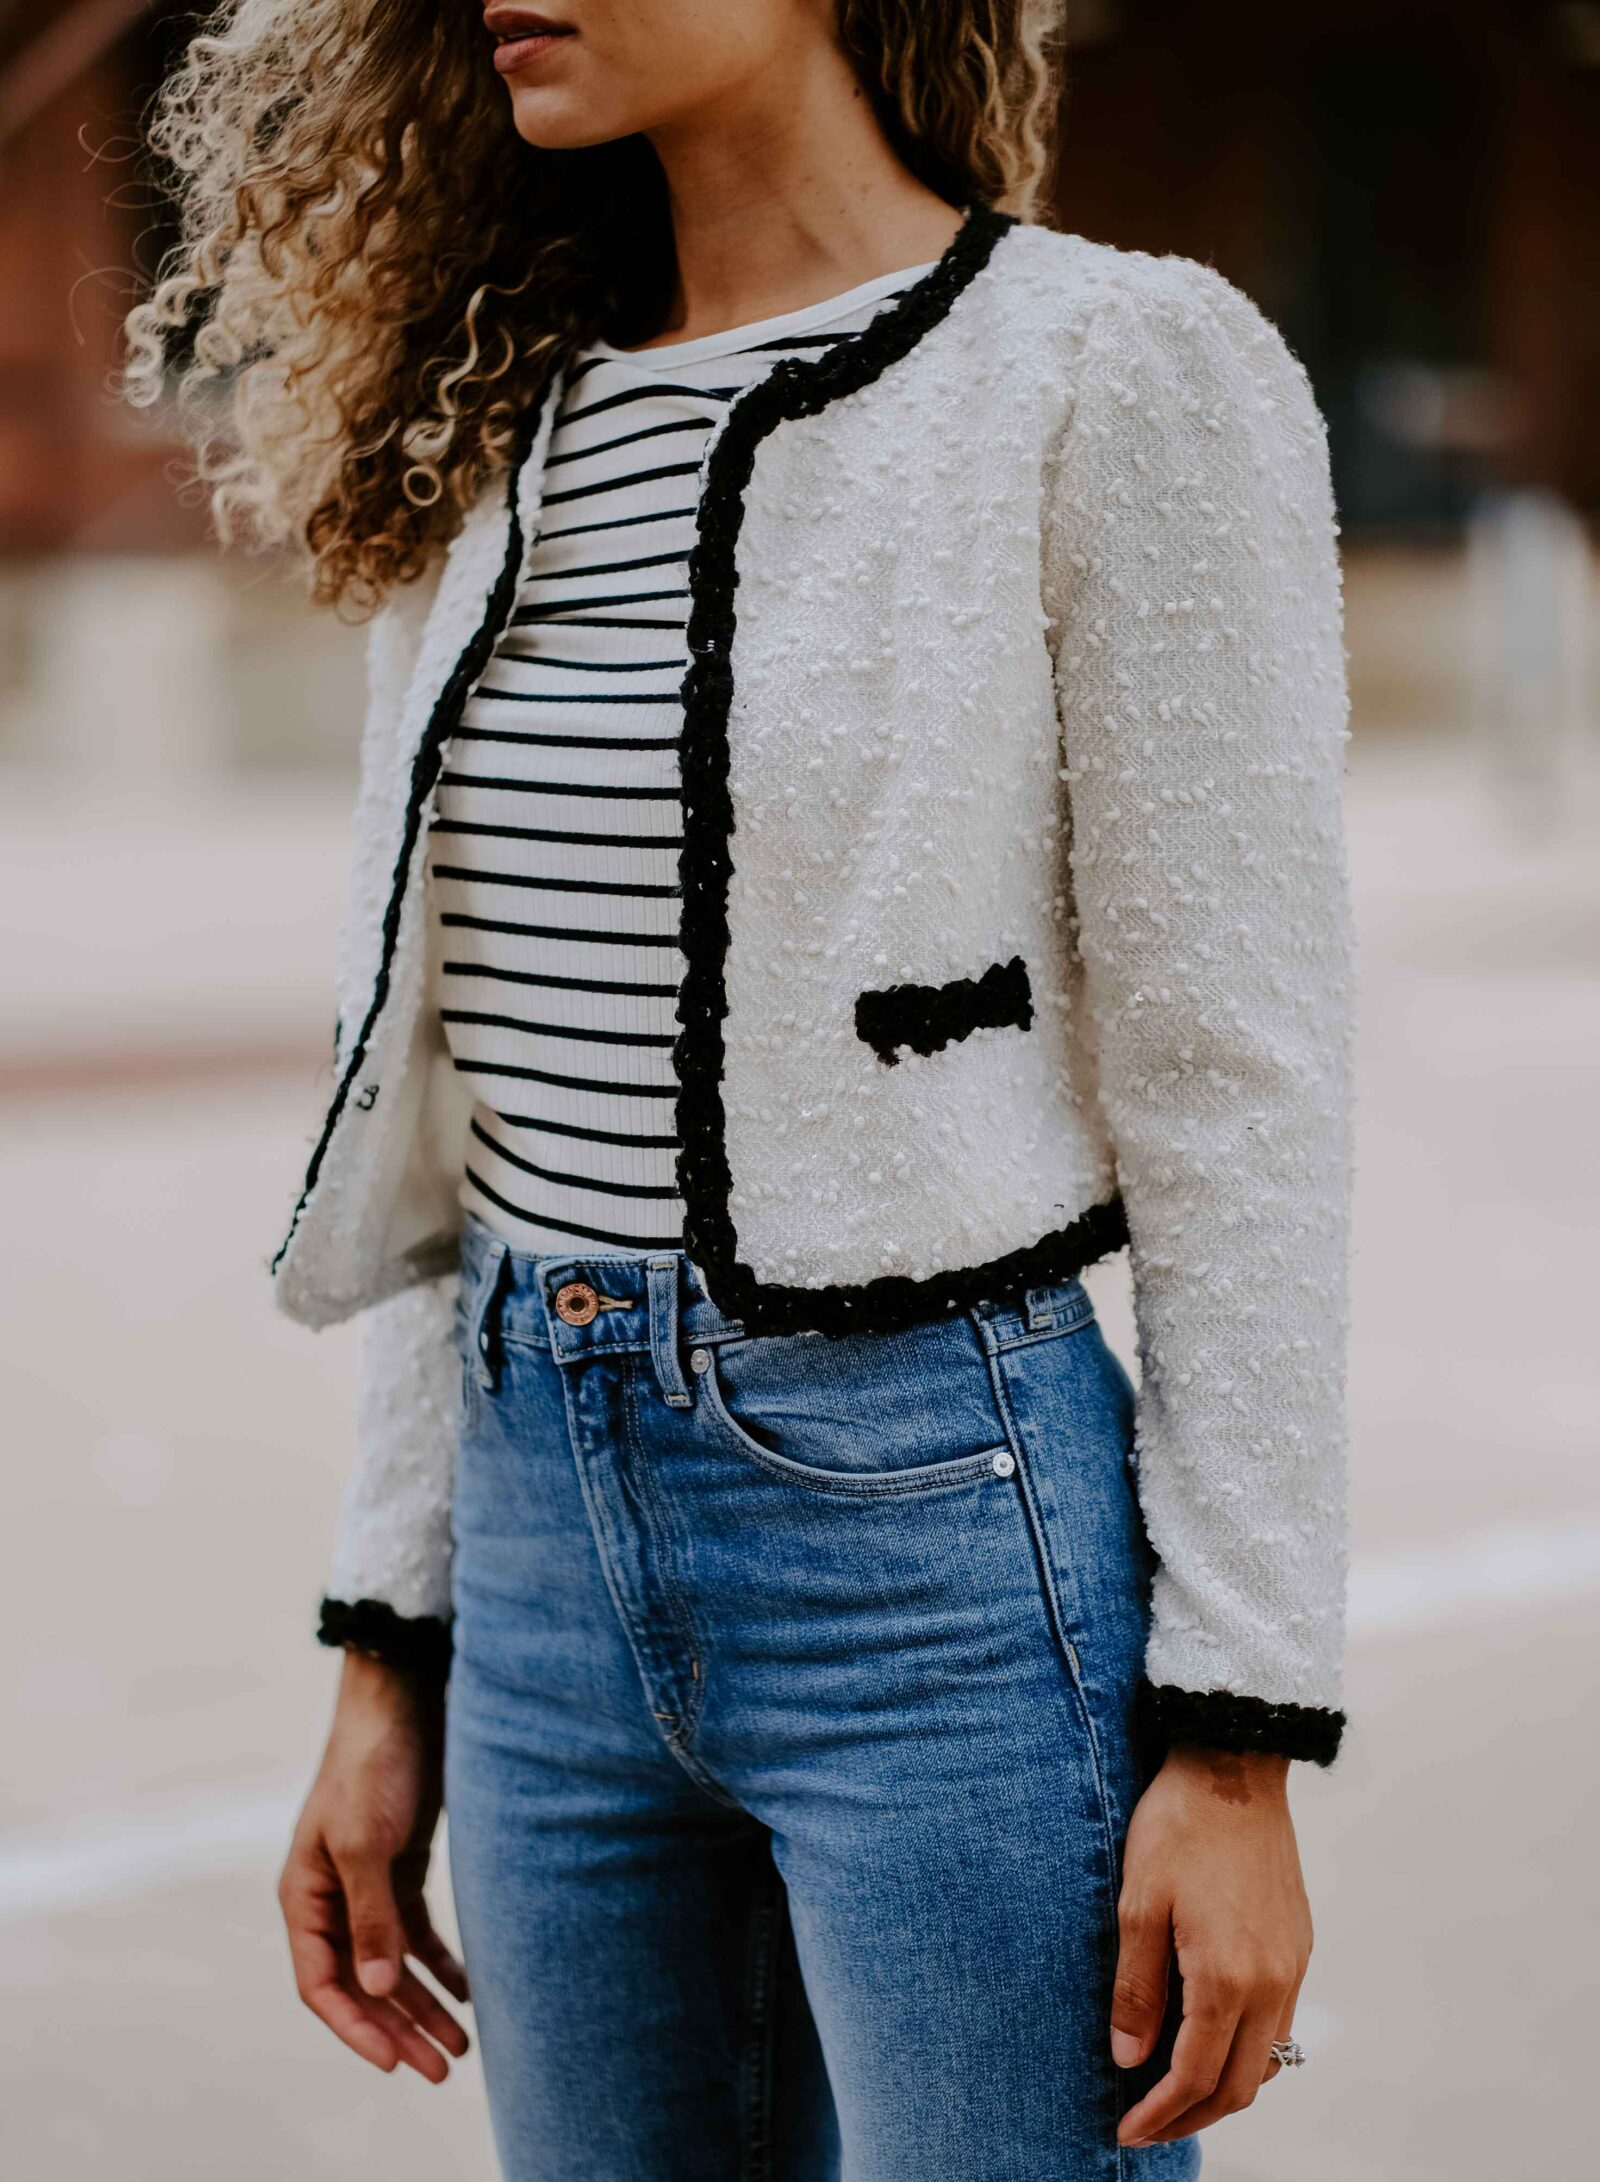 classy tweed jacket outfit